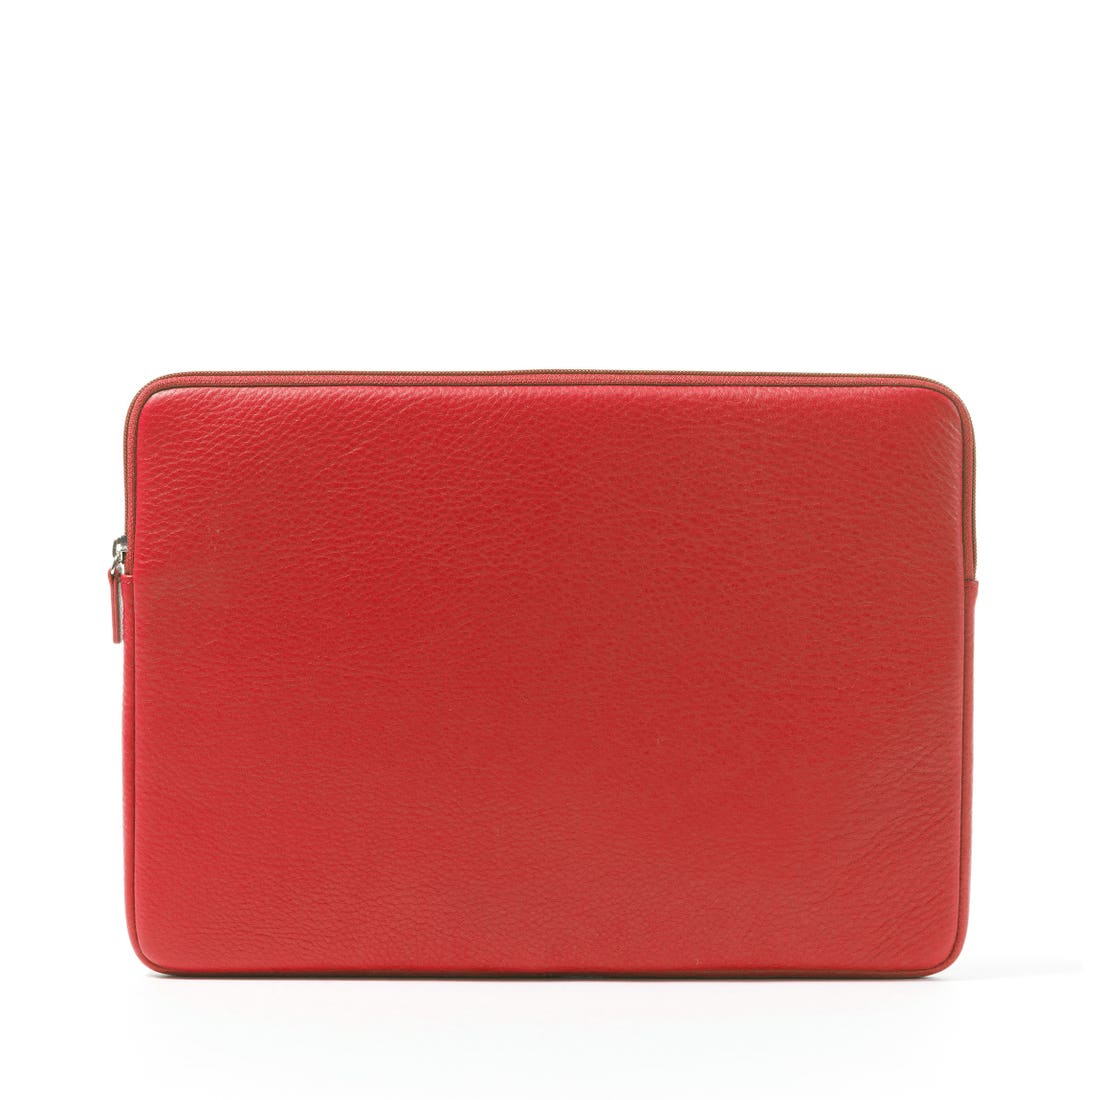 15 Inch MacBook Pro Sleeve